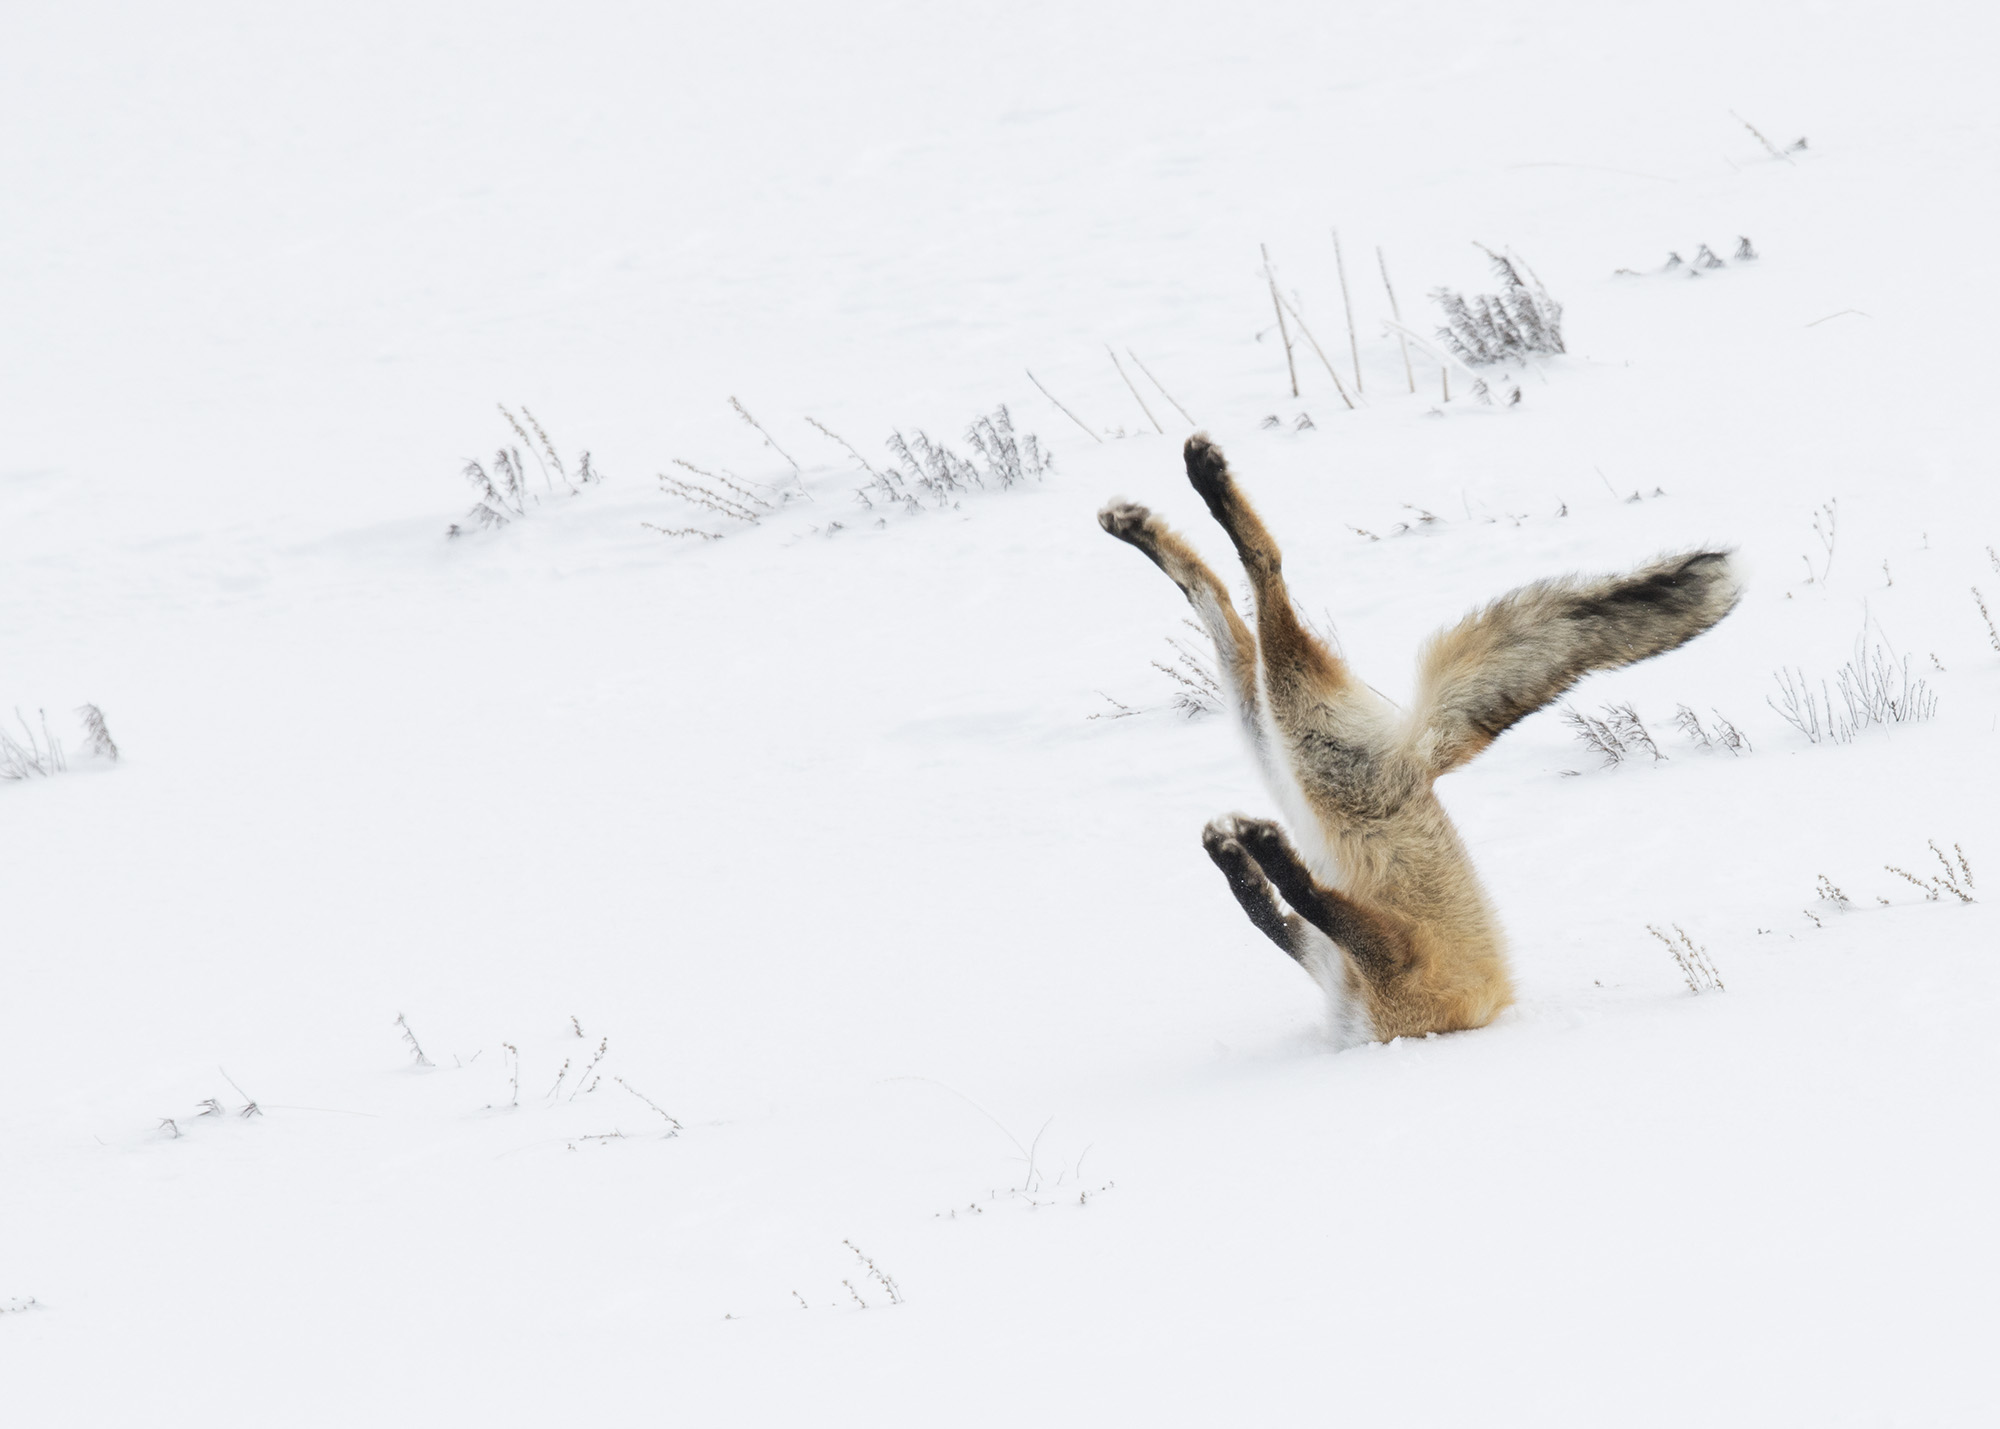 Overall winner and winner in the Land category: A fox dives into the snow in Yellowstone National Park. Photo by Angela Bohlke /The Comedy Wildlife Photography Awards.